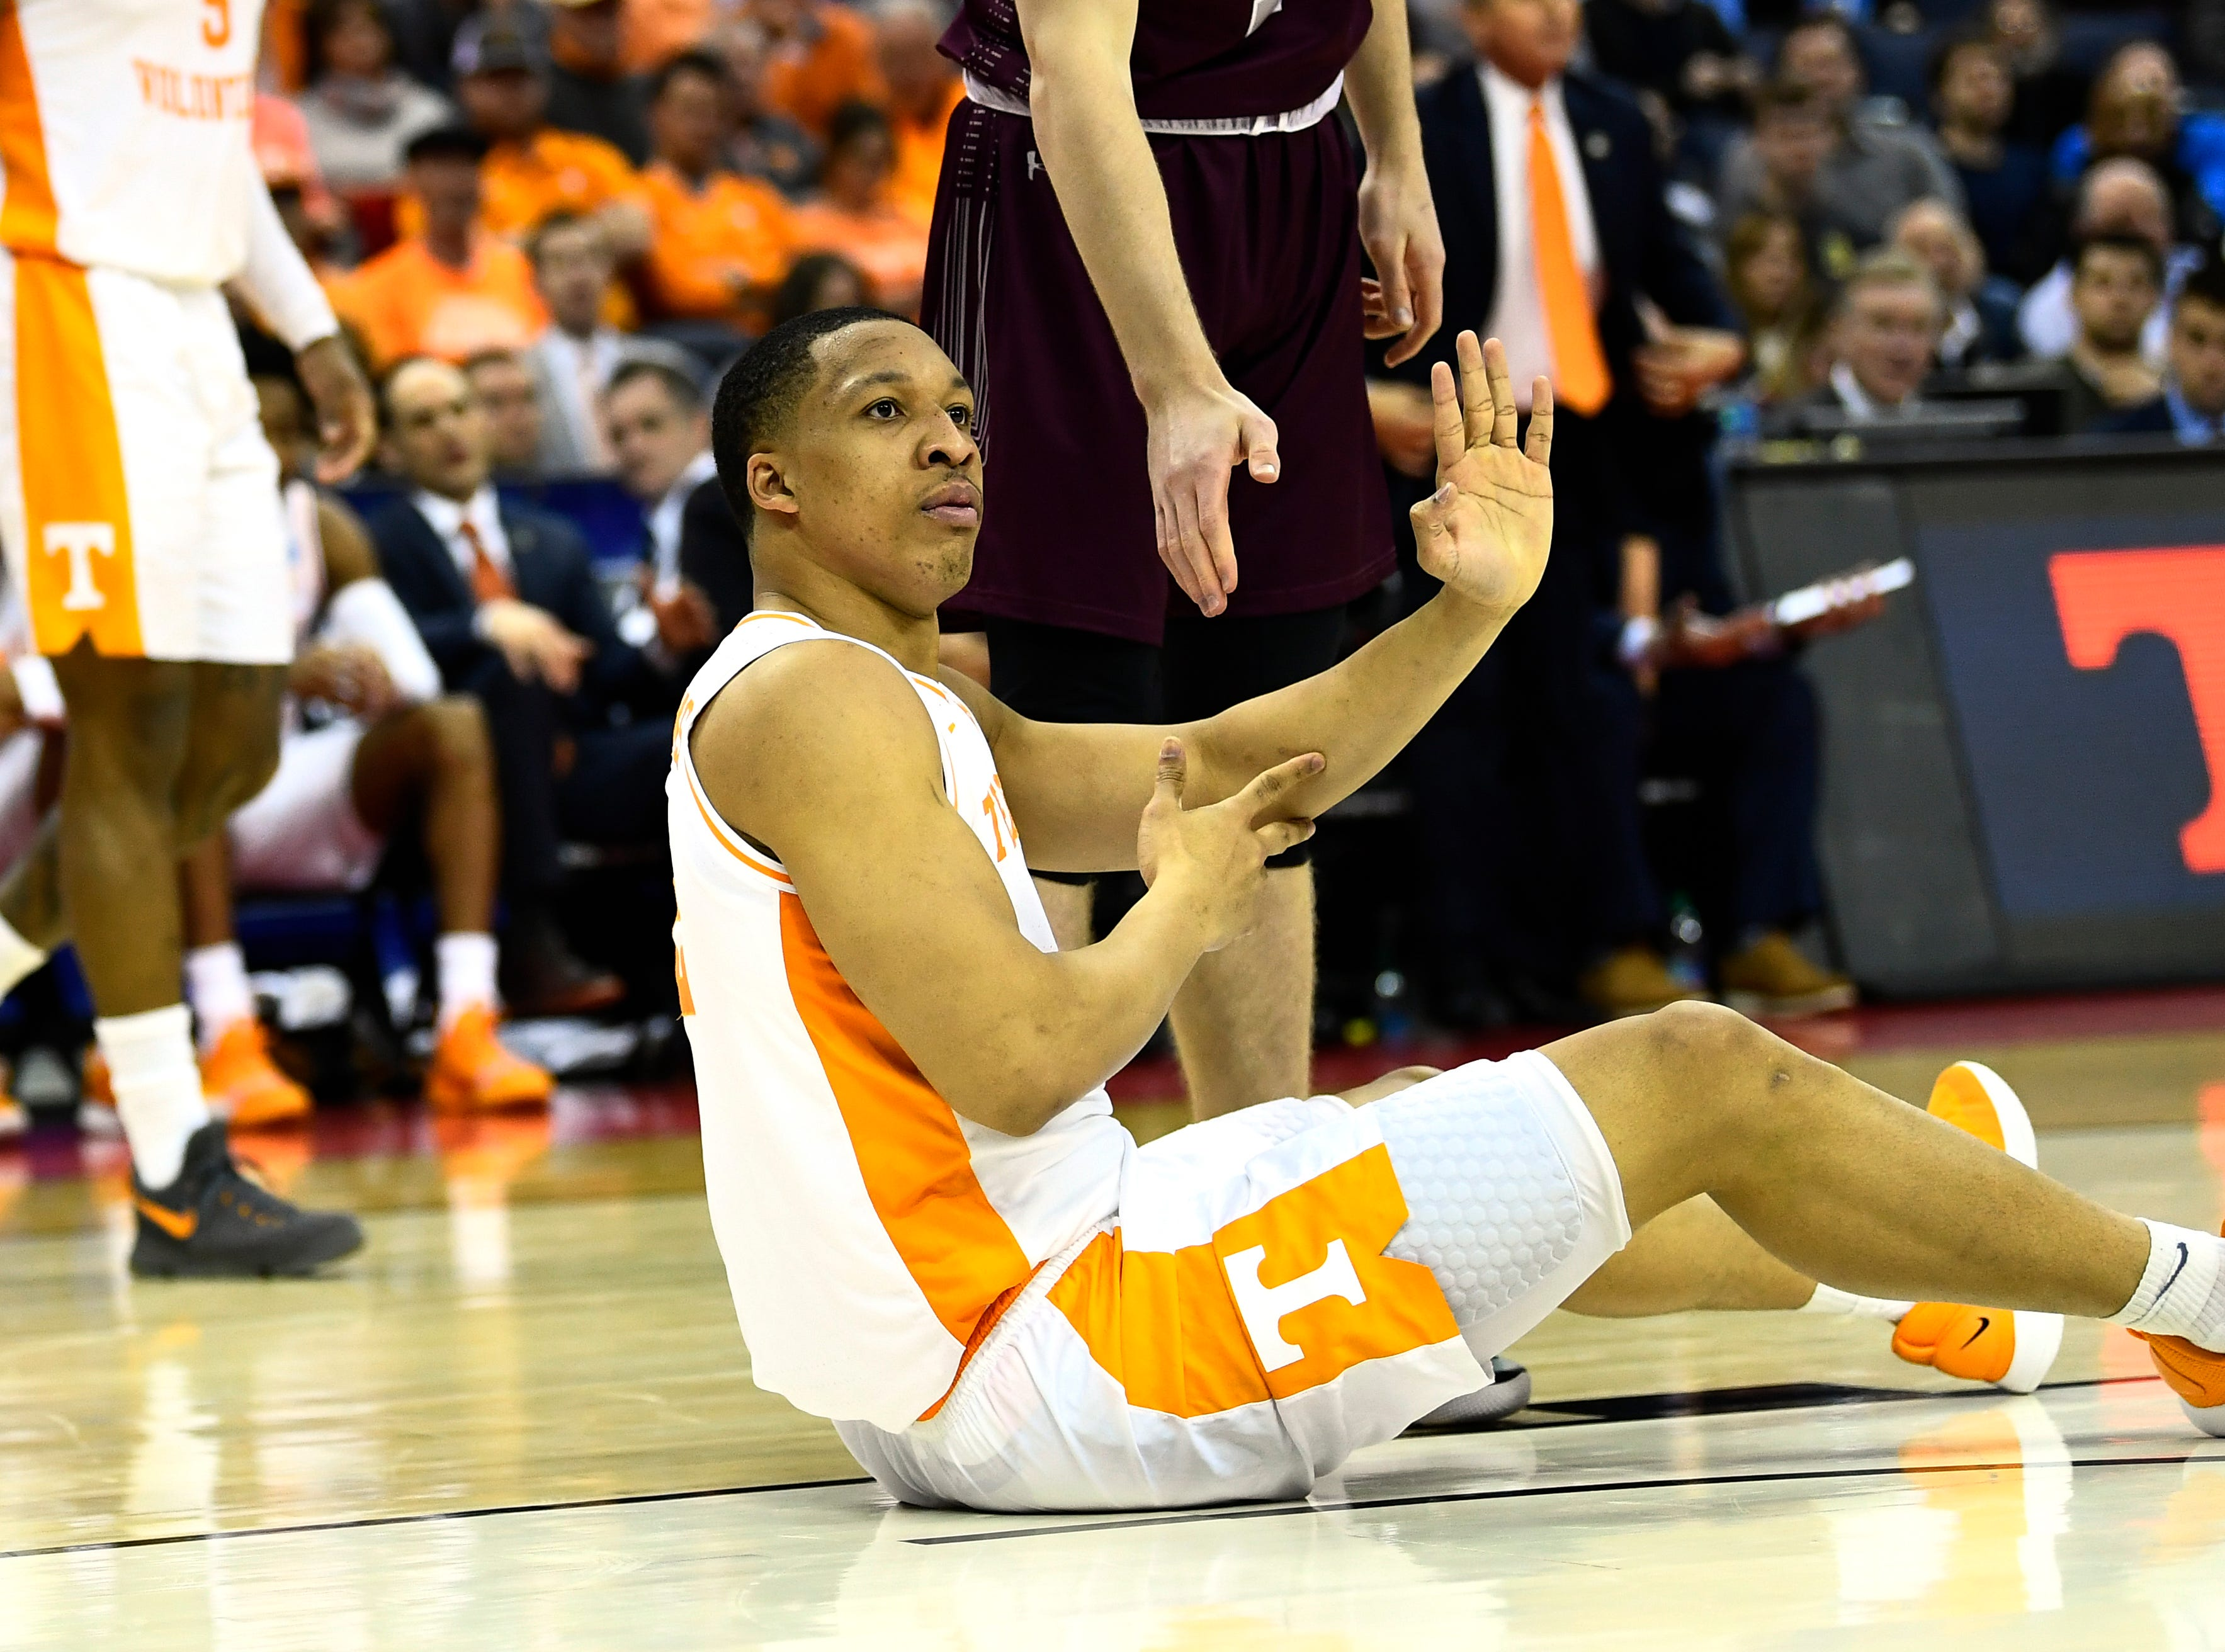 Tennessee forward Grant Williams (2) looks for a foul call during game against the Colgate Raiders in the first round of the NCAA Tournament at Nationwide Arena in Columbus, Ohio, on Friday, March 22, 2019.